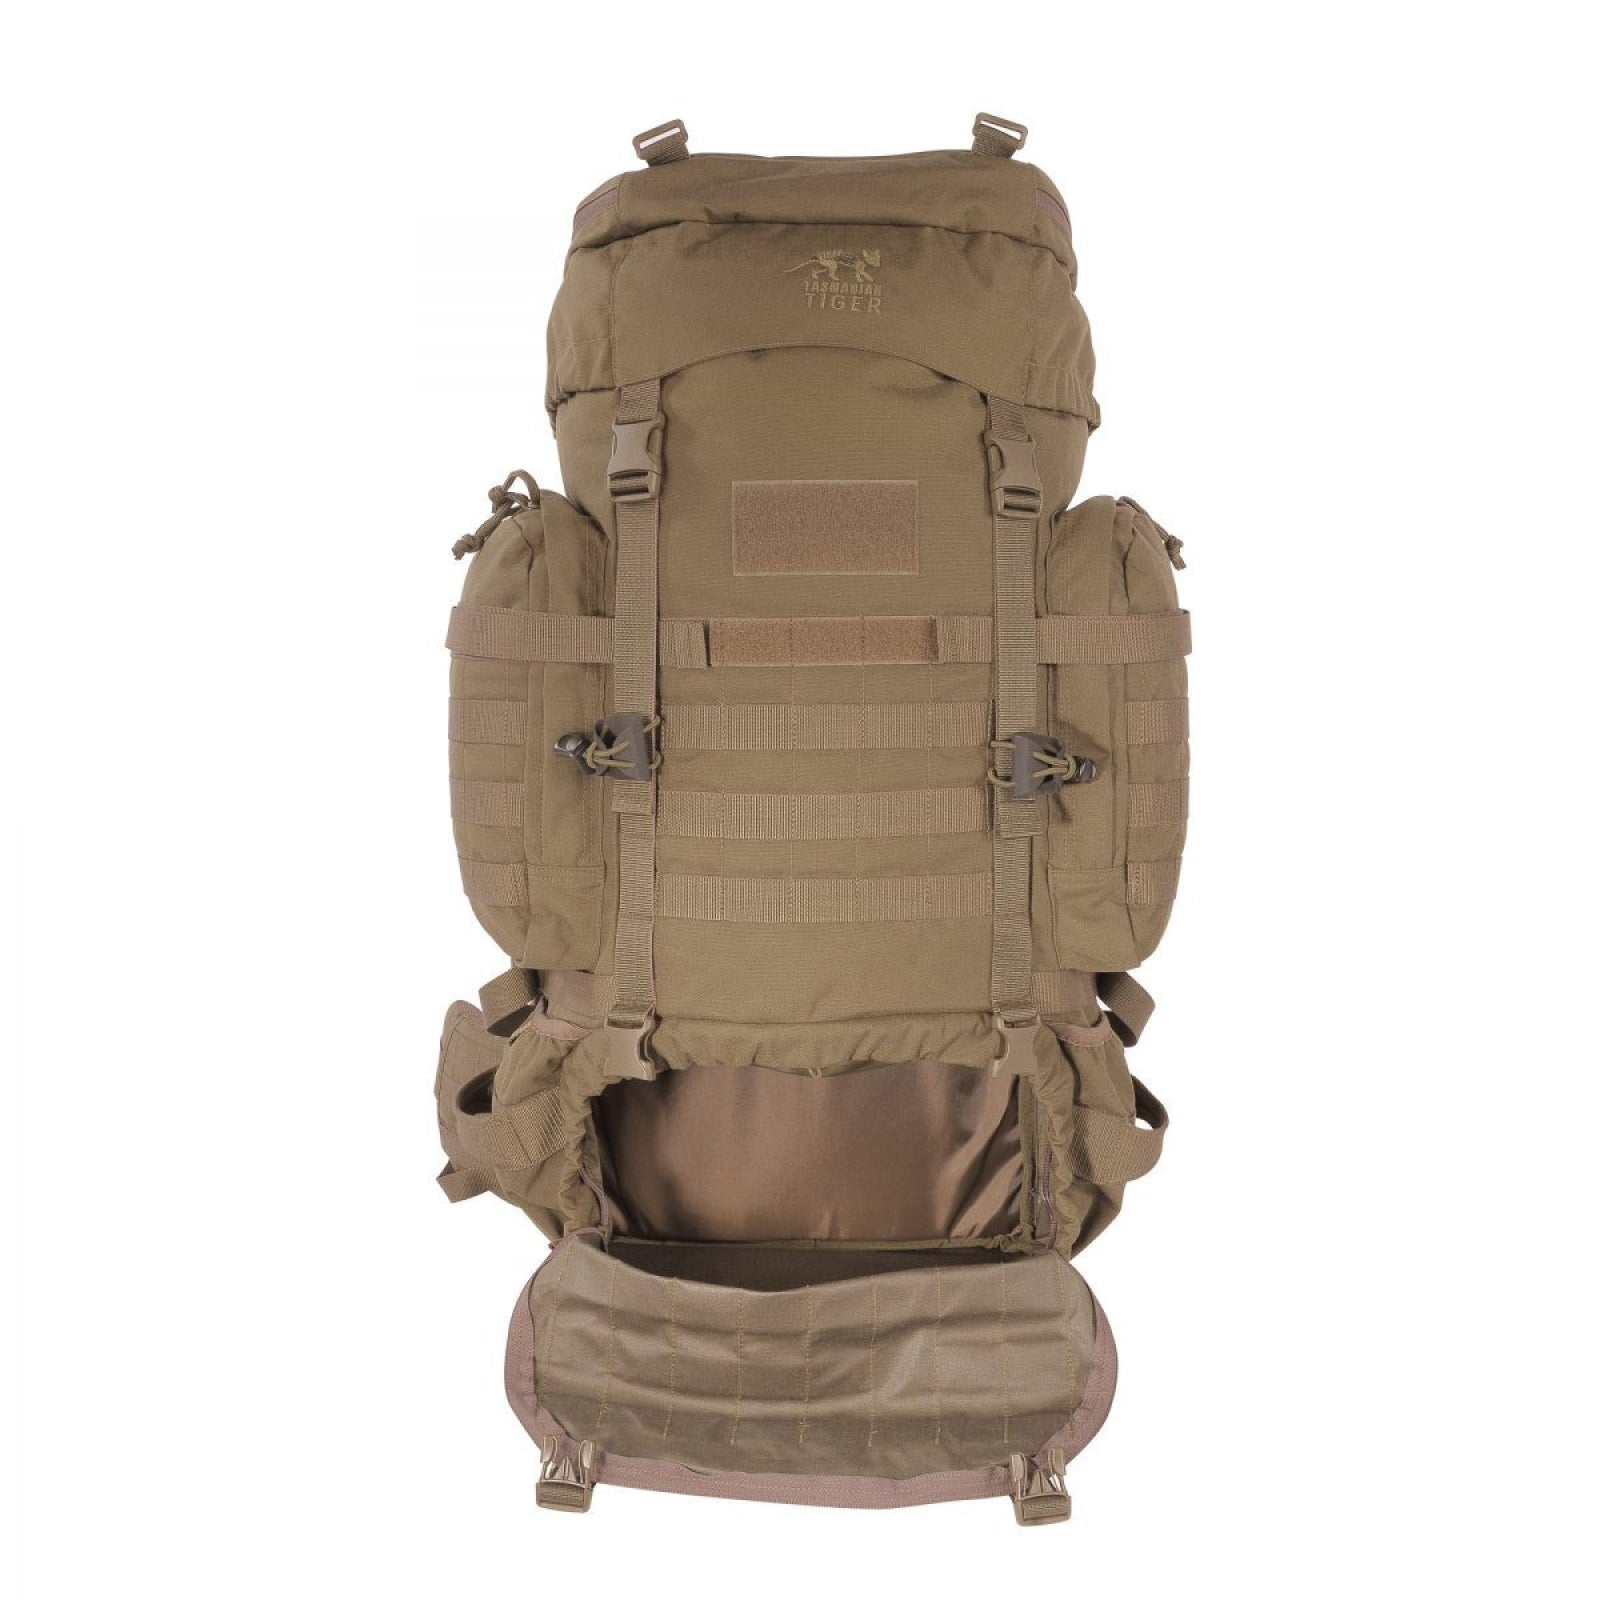 Tt Raid Pack Mkiii Combat Backpack 52l Coyote Brown / 52 L Norvine Official Store